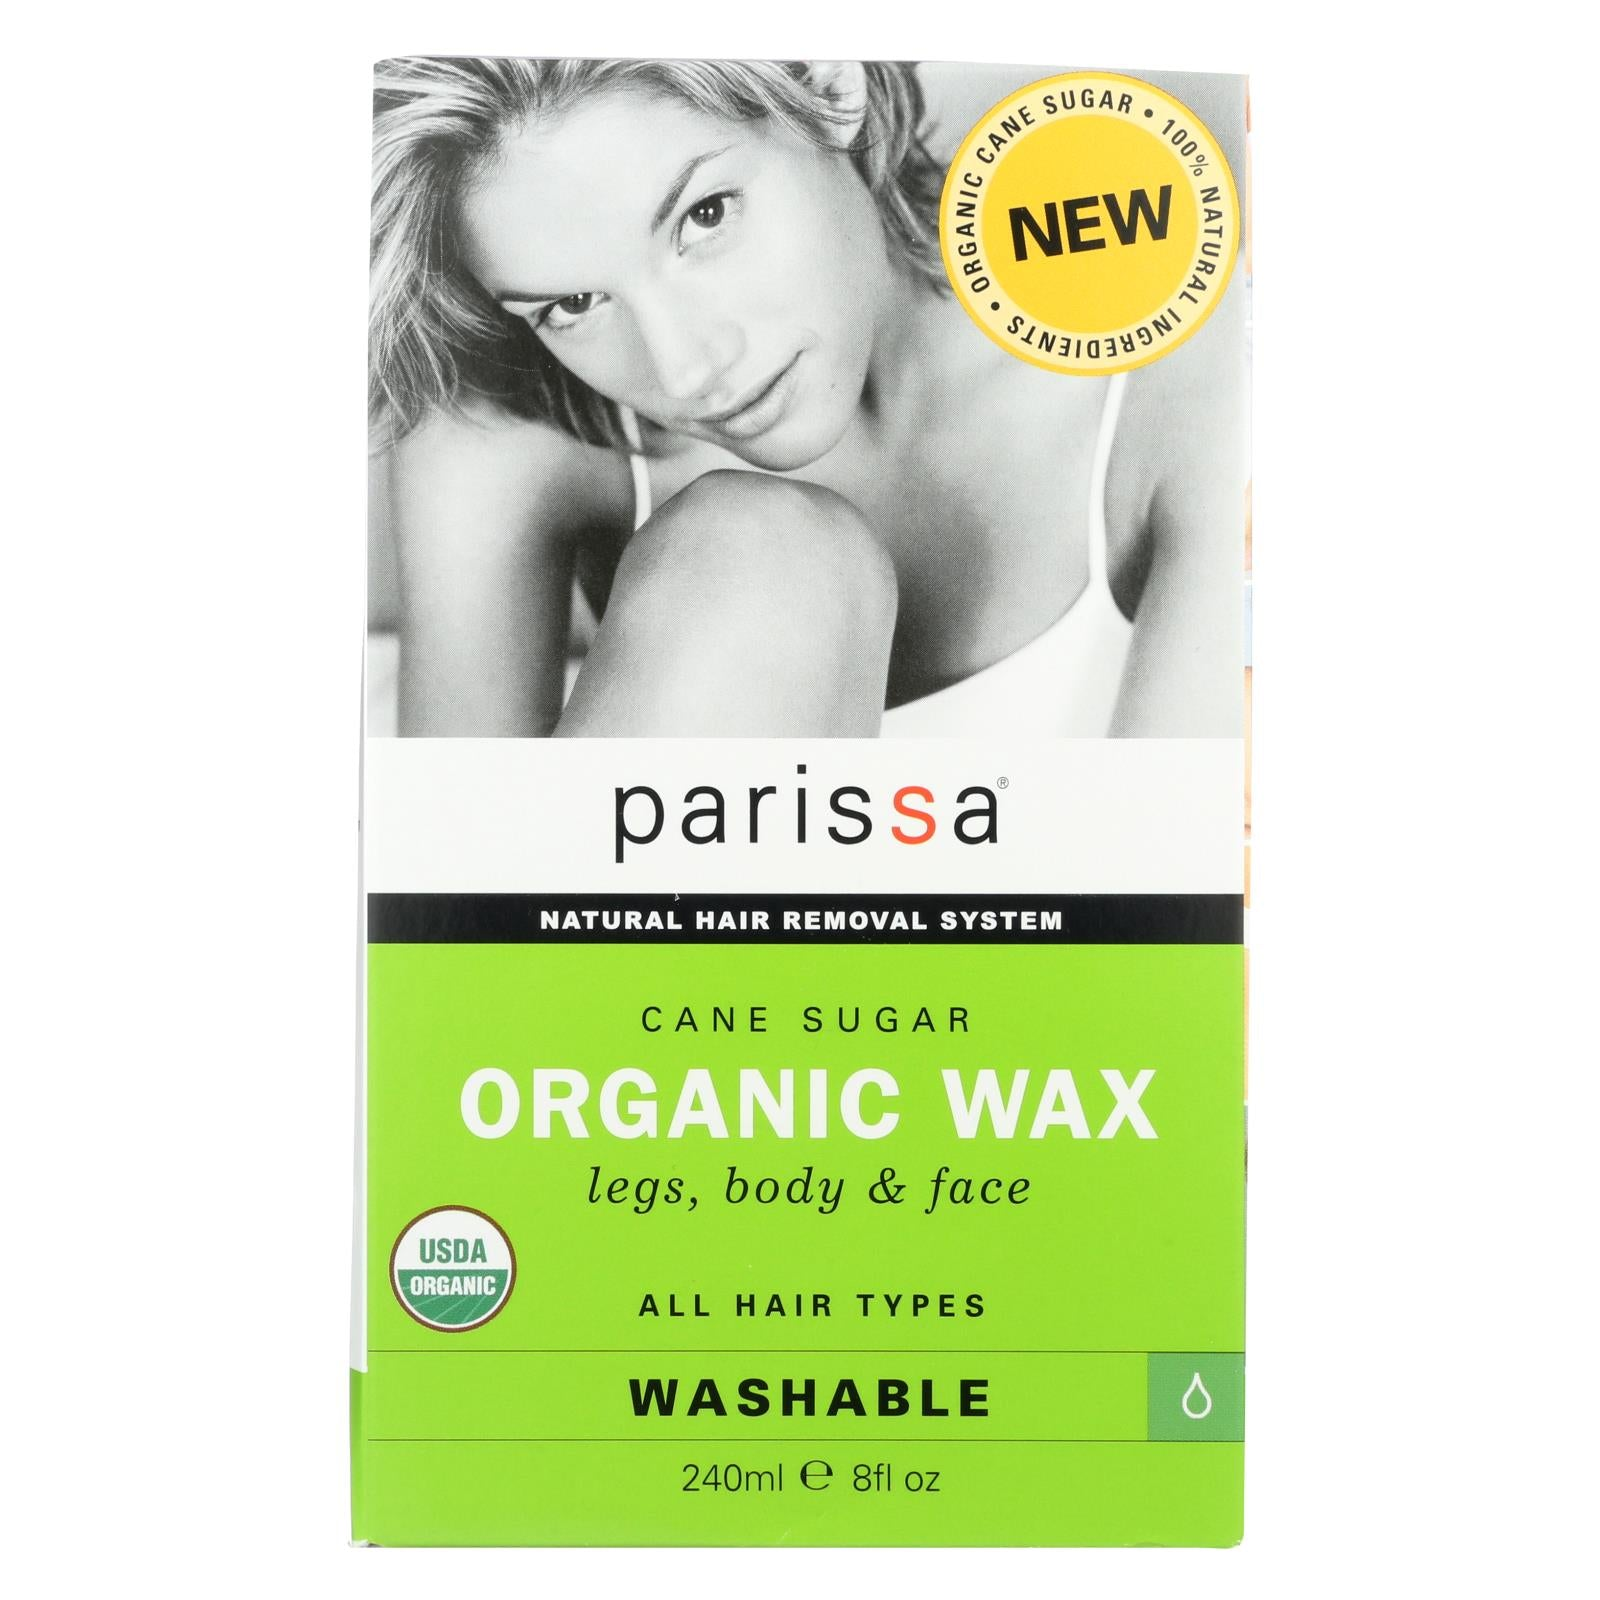 Parissa Hair Removal Wax - Organic - Cane Sugar - 8 Oz HG1638949